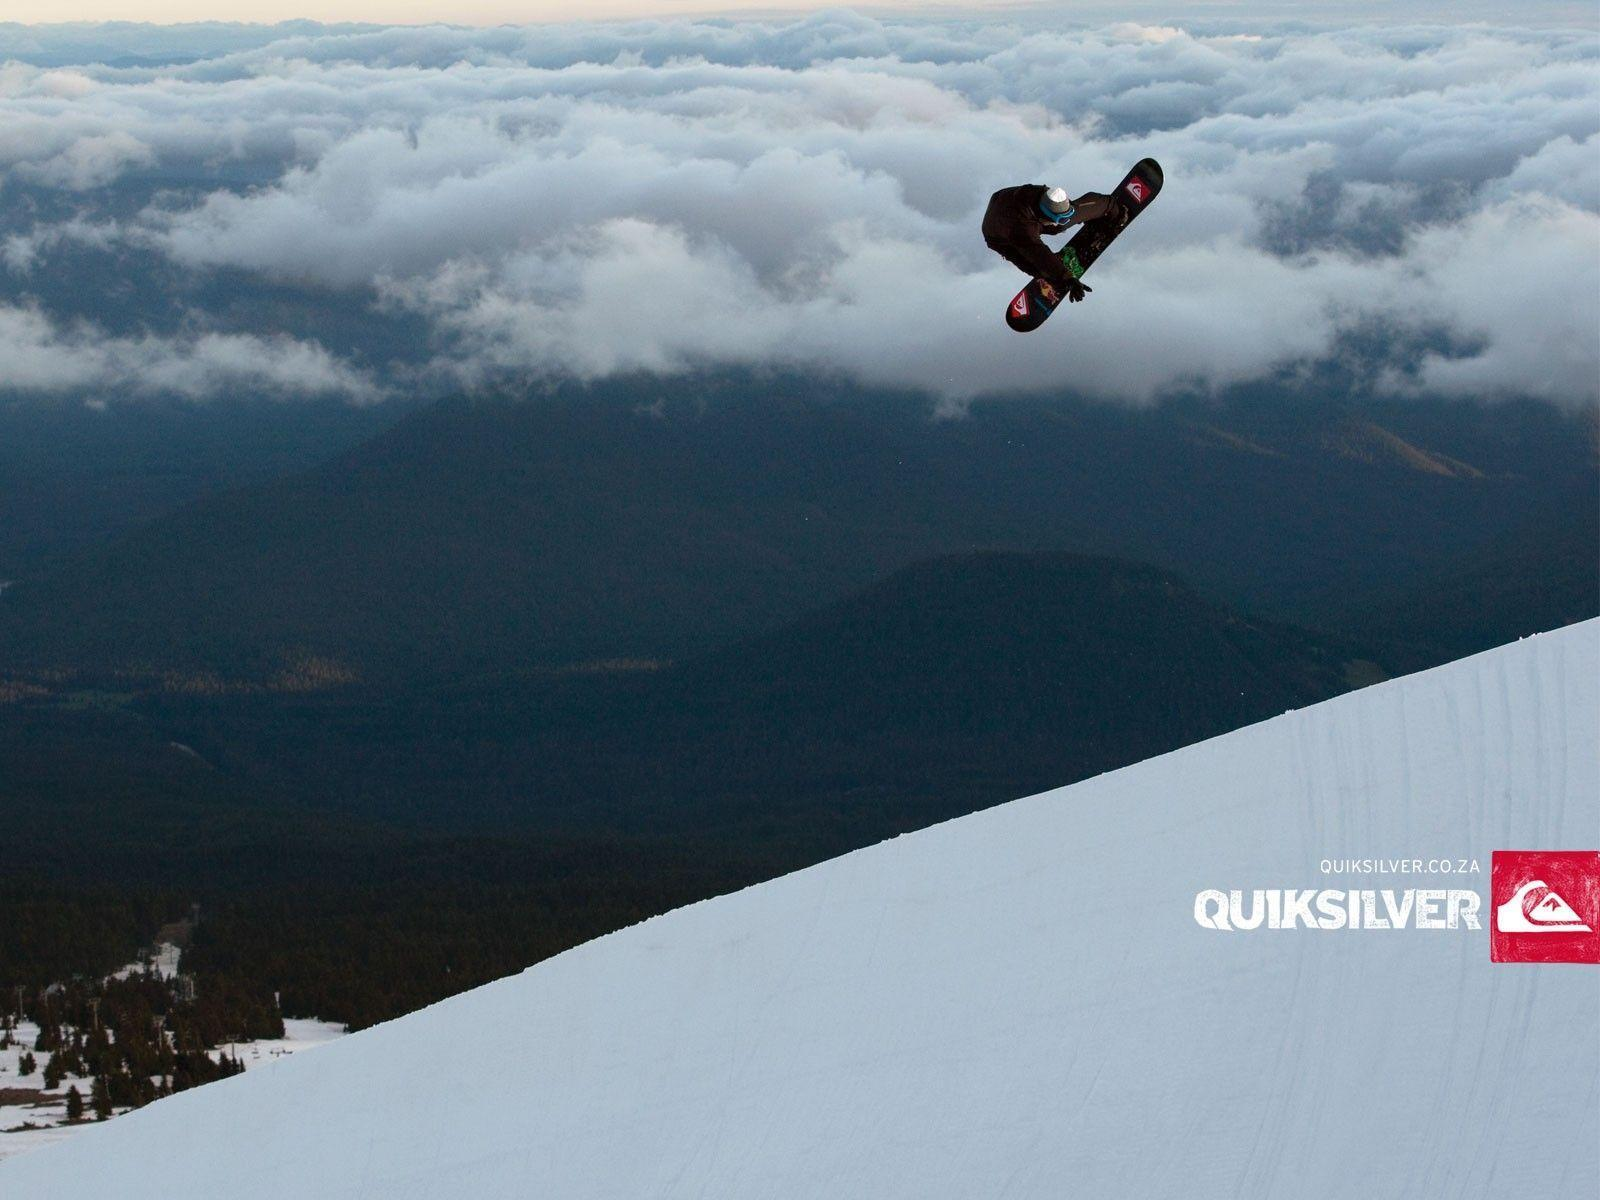 Quicksilver Wallpapers - Wallpaper CaveQuiksilver Wallpaper